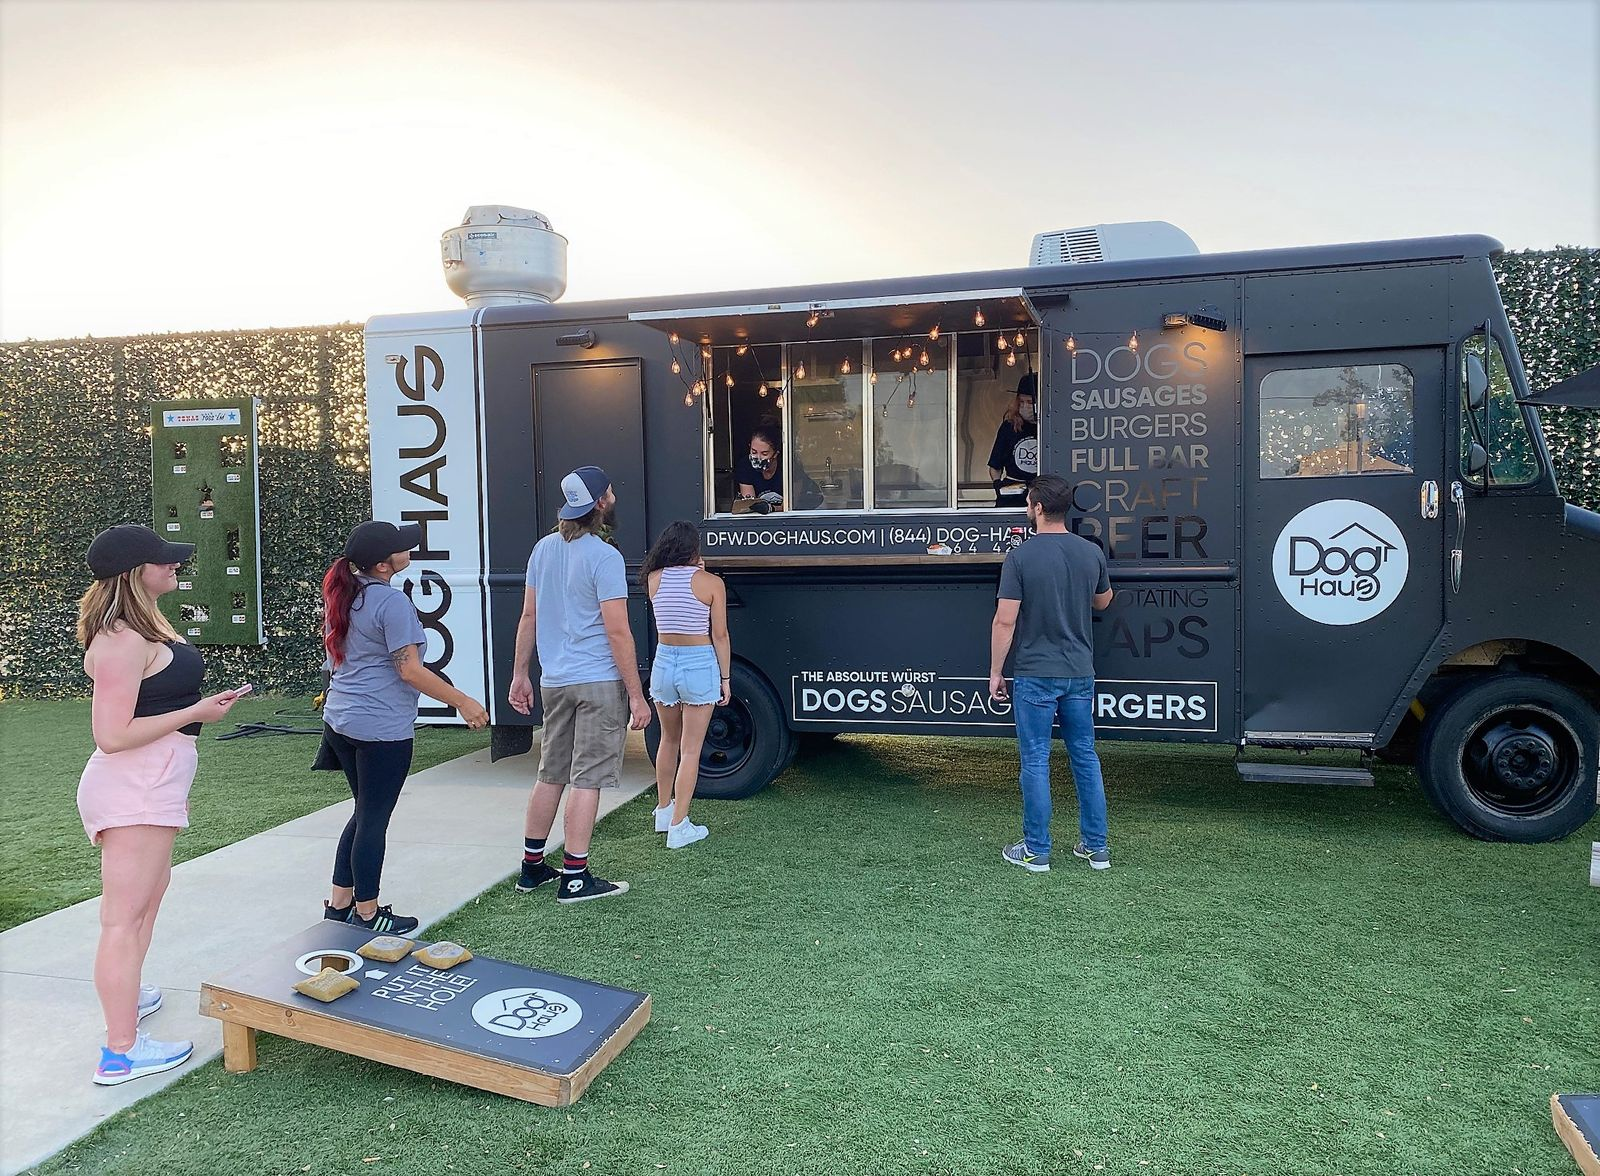 Dog Haus' First-Ever Food Truck is Rolling Out in DFW